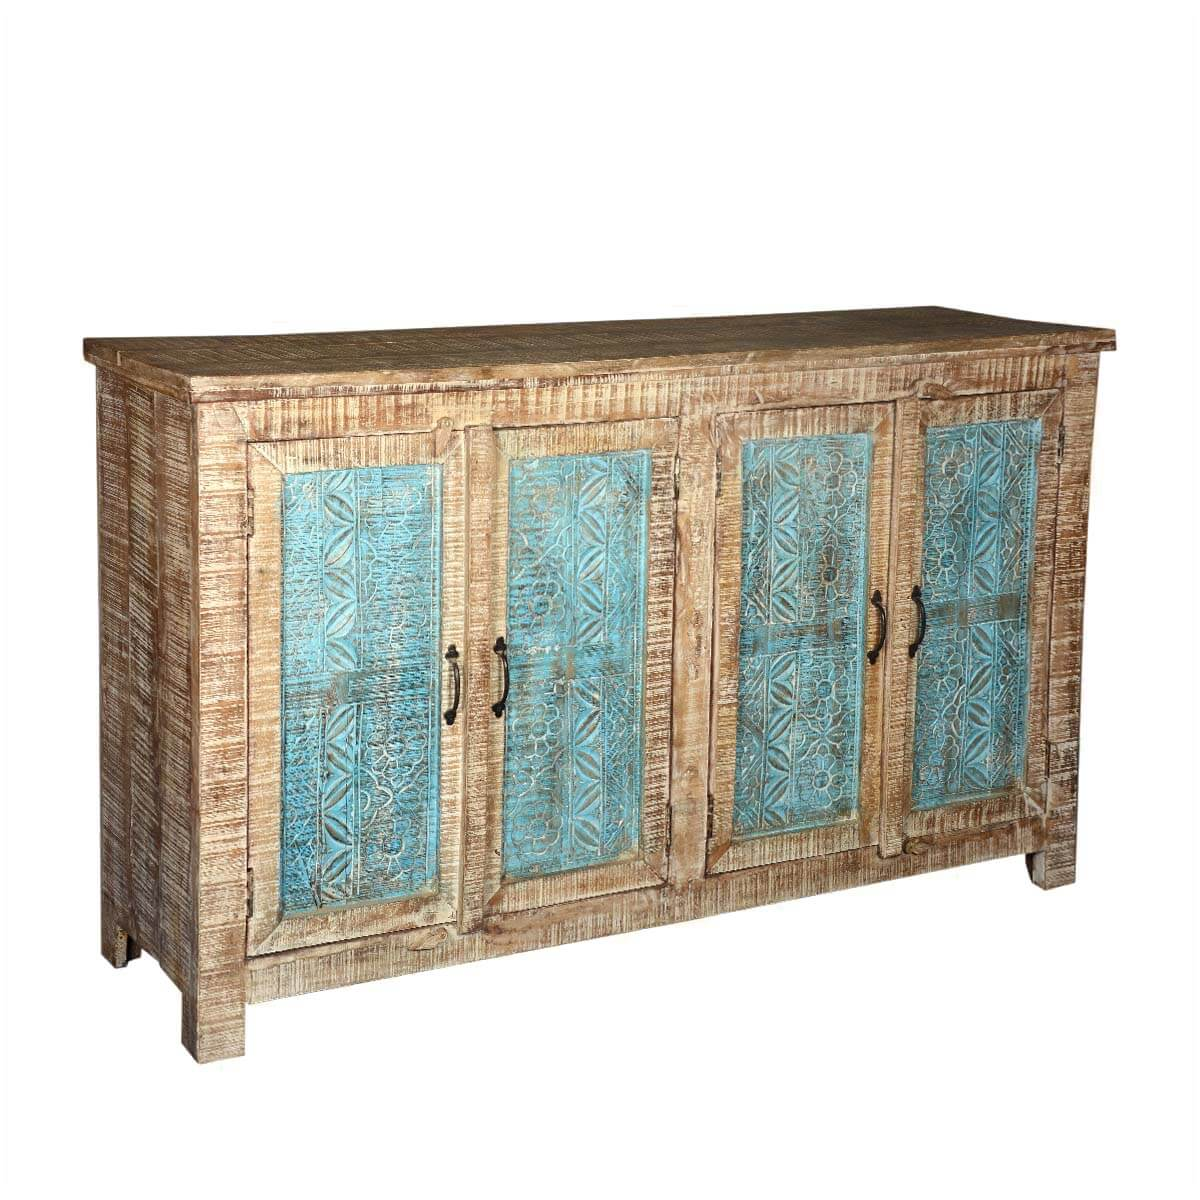 Santa Fe Textured Mango Wood Sideboard Buffet Cabinet. Full resolution‎  file, nominally Width 1200 Height 1200 pixels, file with #9F7C2C.